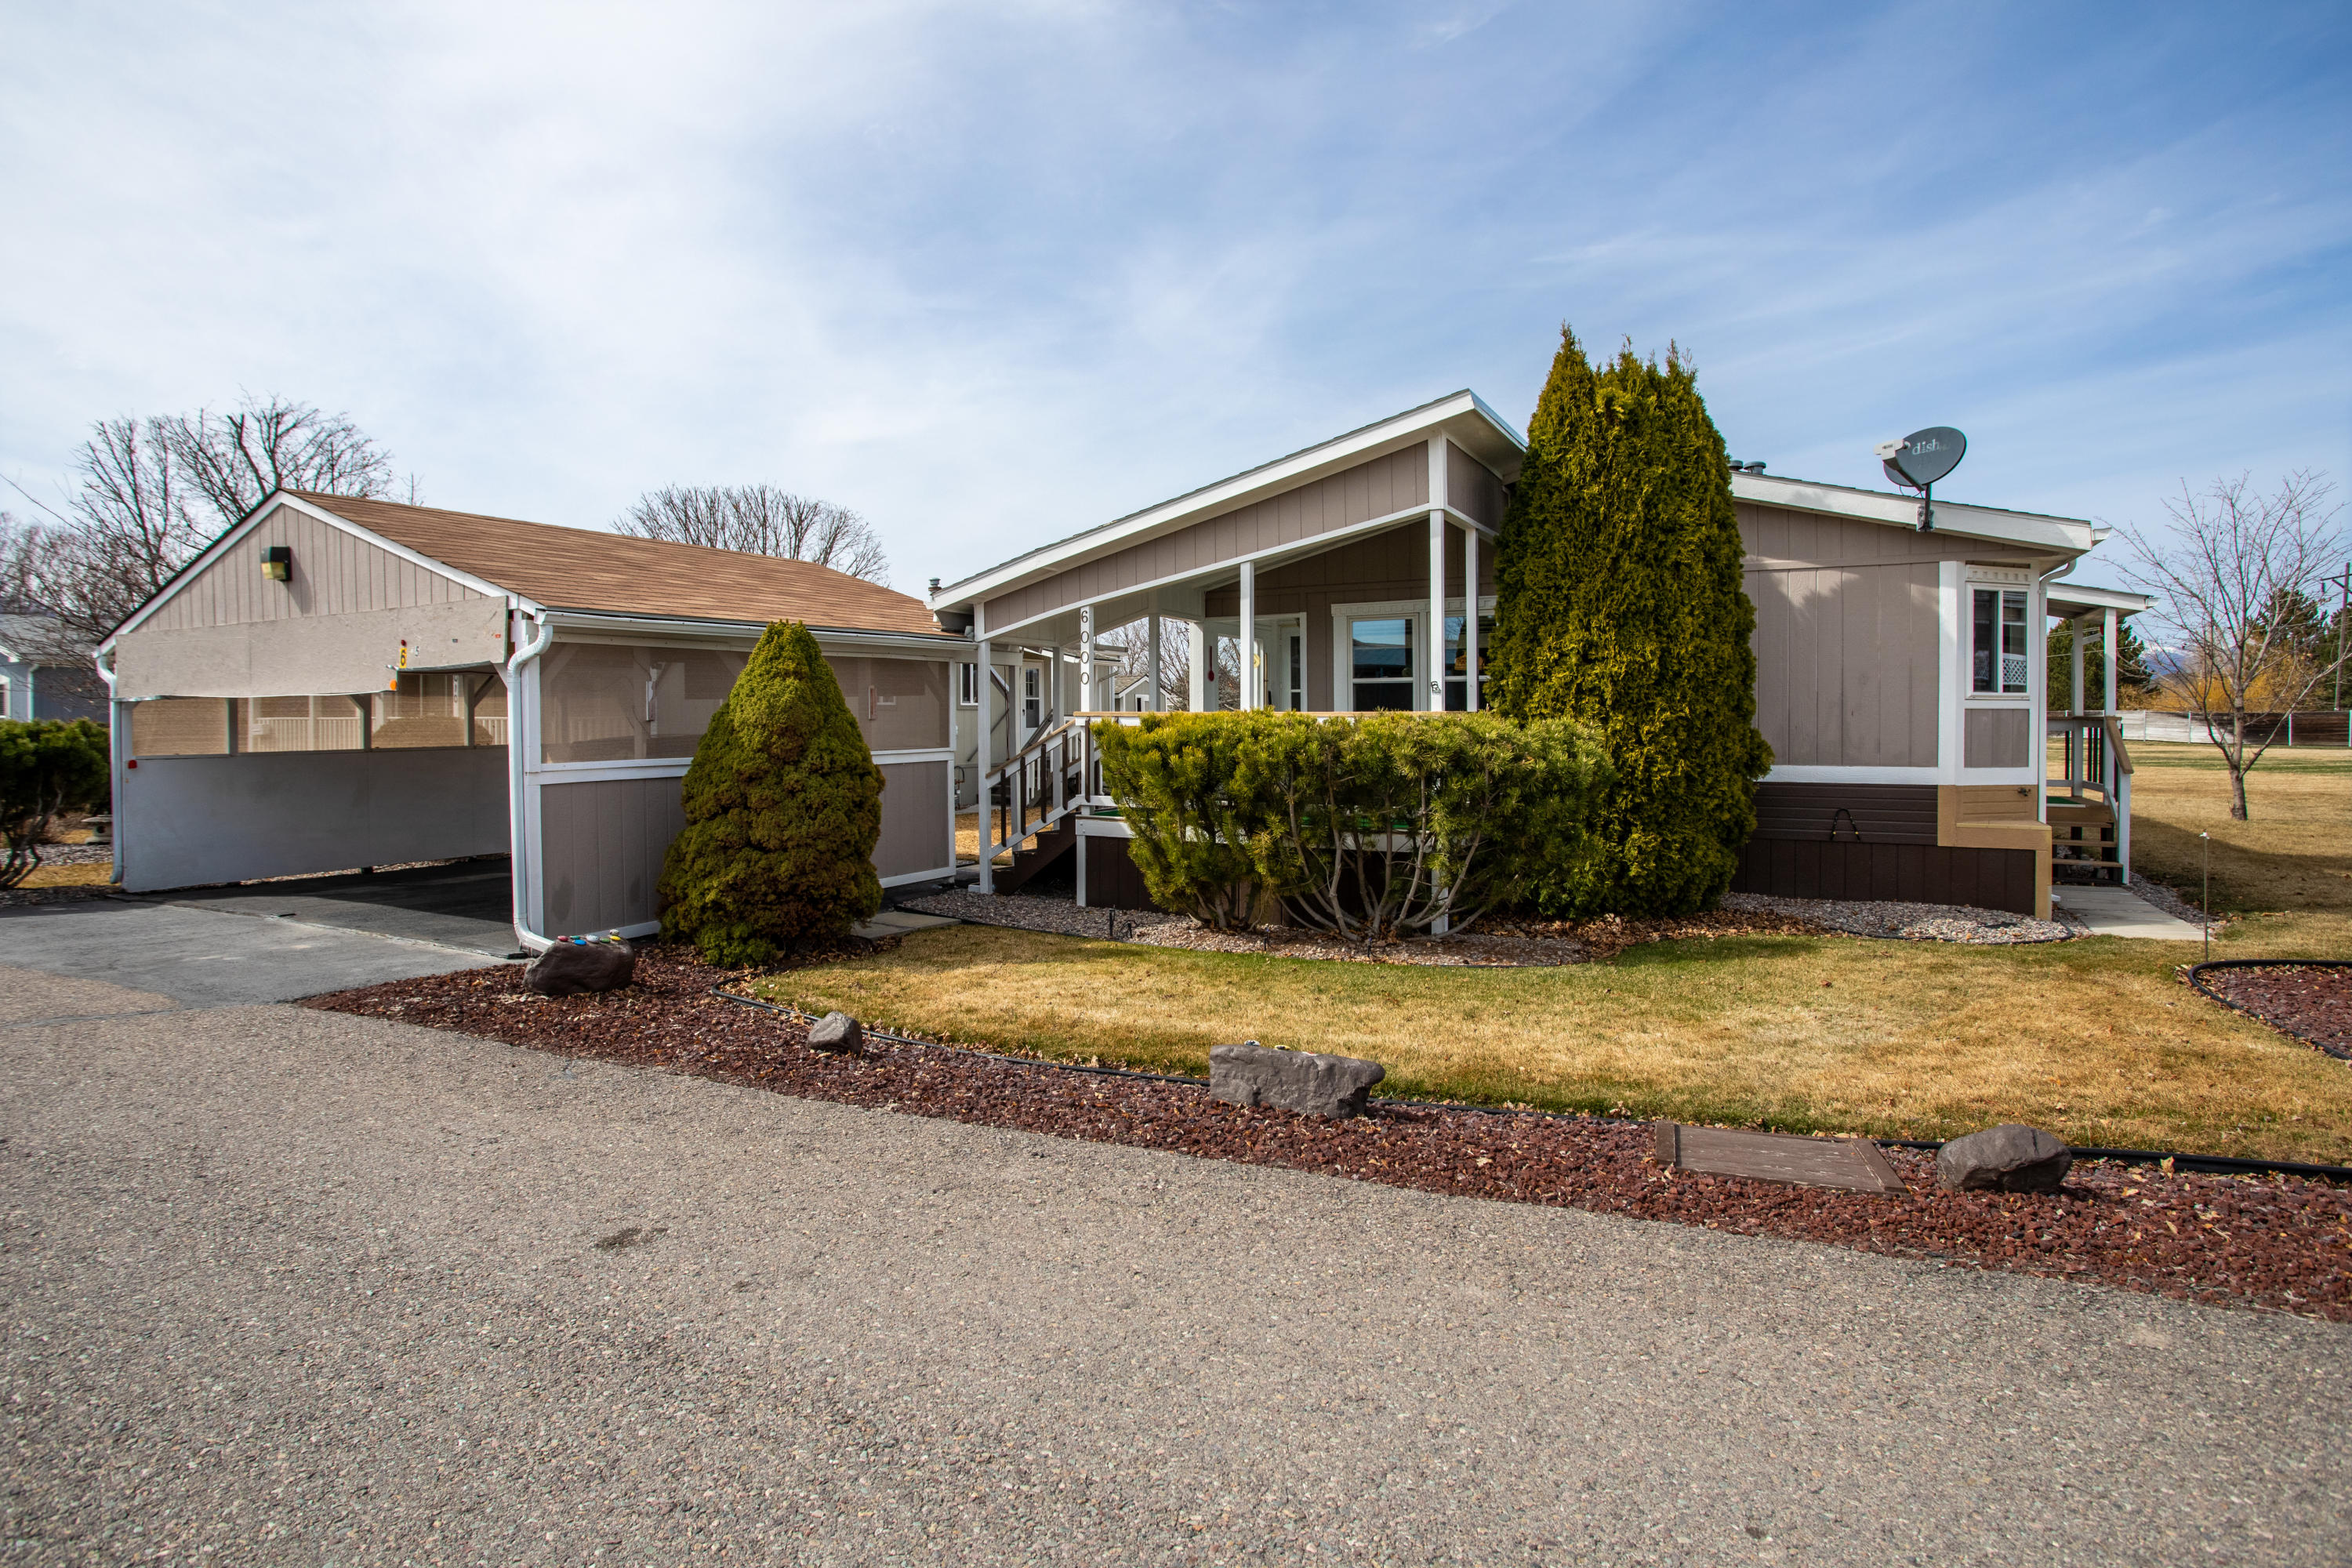 Move in ready and well cared for manufactured home in the Katoonah Lodges, a community for people 55 and older with walkways and parks. This home comes with covered parking and newly placed exterior carpeting on the deck. Walk in to a bright living space and an open concept floor plan. The kitchen has plenty of counter space and storage with a pantry closet. The master bedroom is large with views over common area and an ensuite including a soaking tub. The laundry room is large with a door to the side yard. Outside there are mature trees and a well maintained yard with underground sprinklers. A storage shed is located in the back of the lot. Listed by Danni Moore.